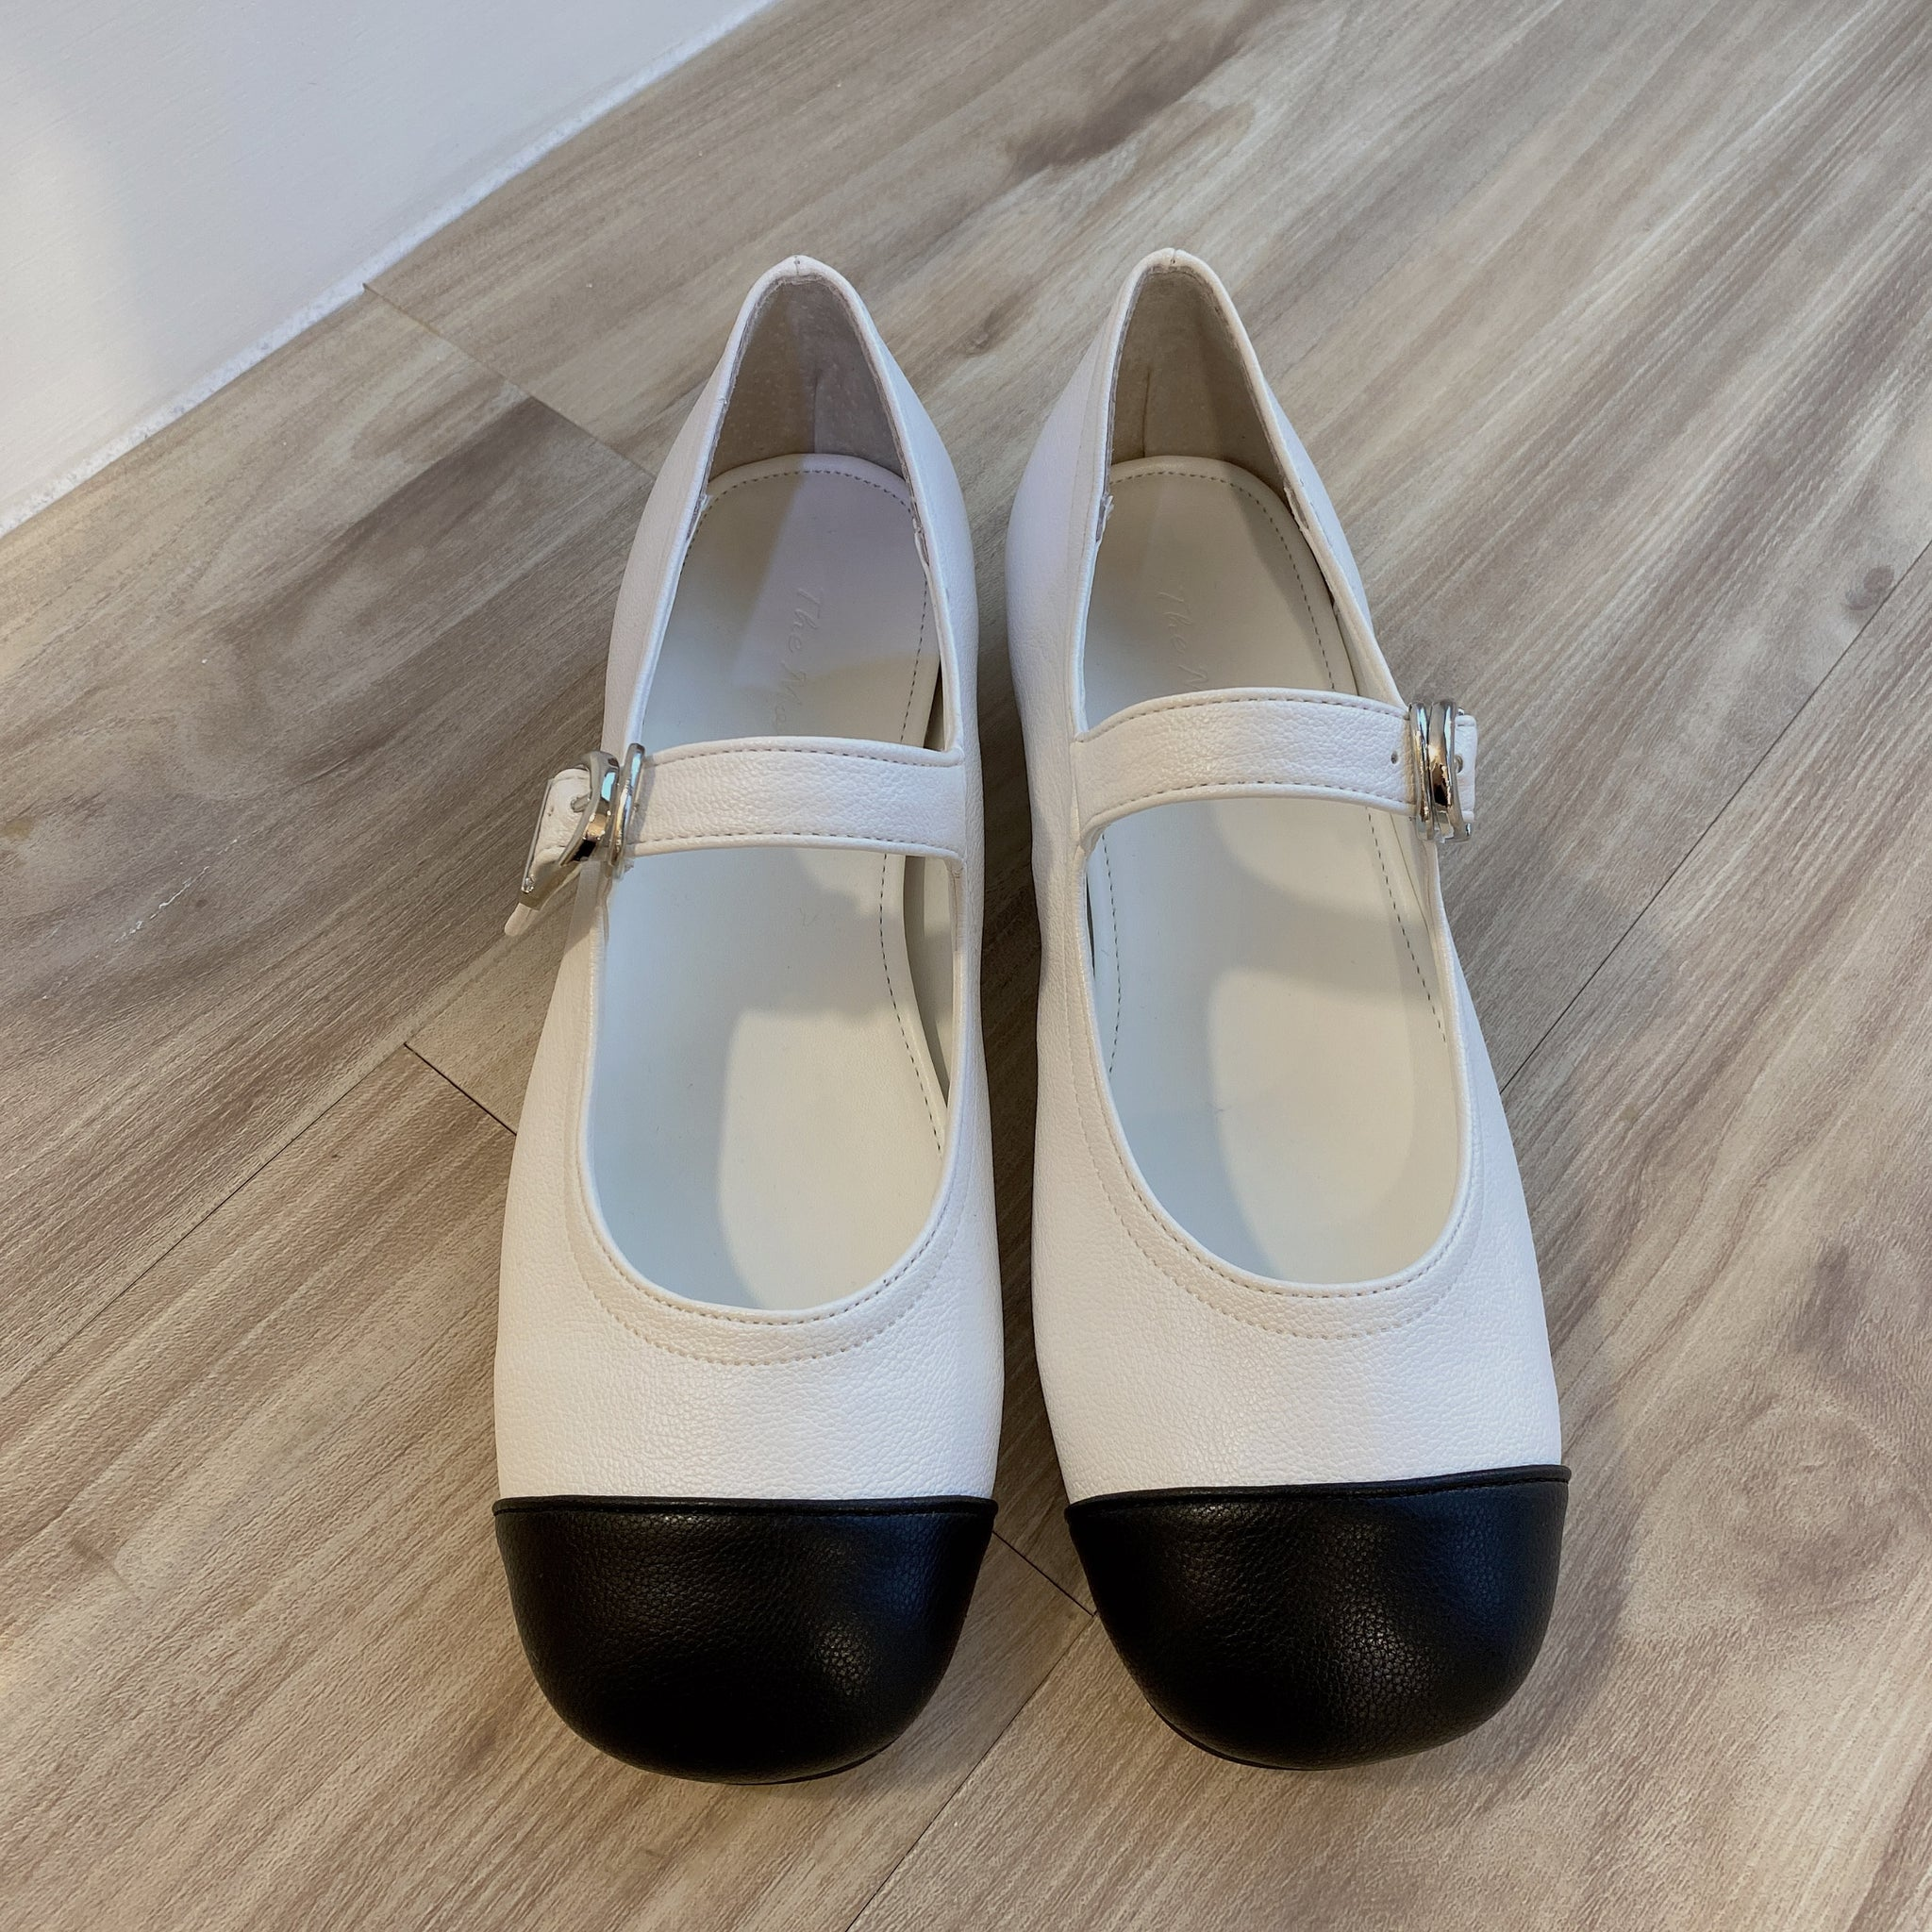 2105001 KR Mary Jane Shoes